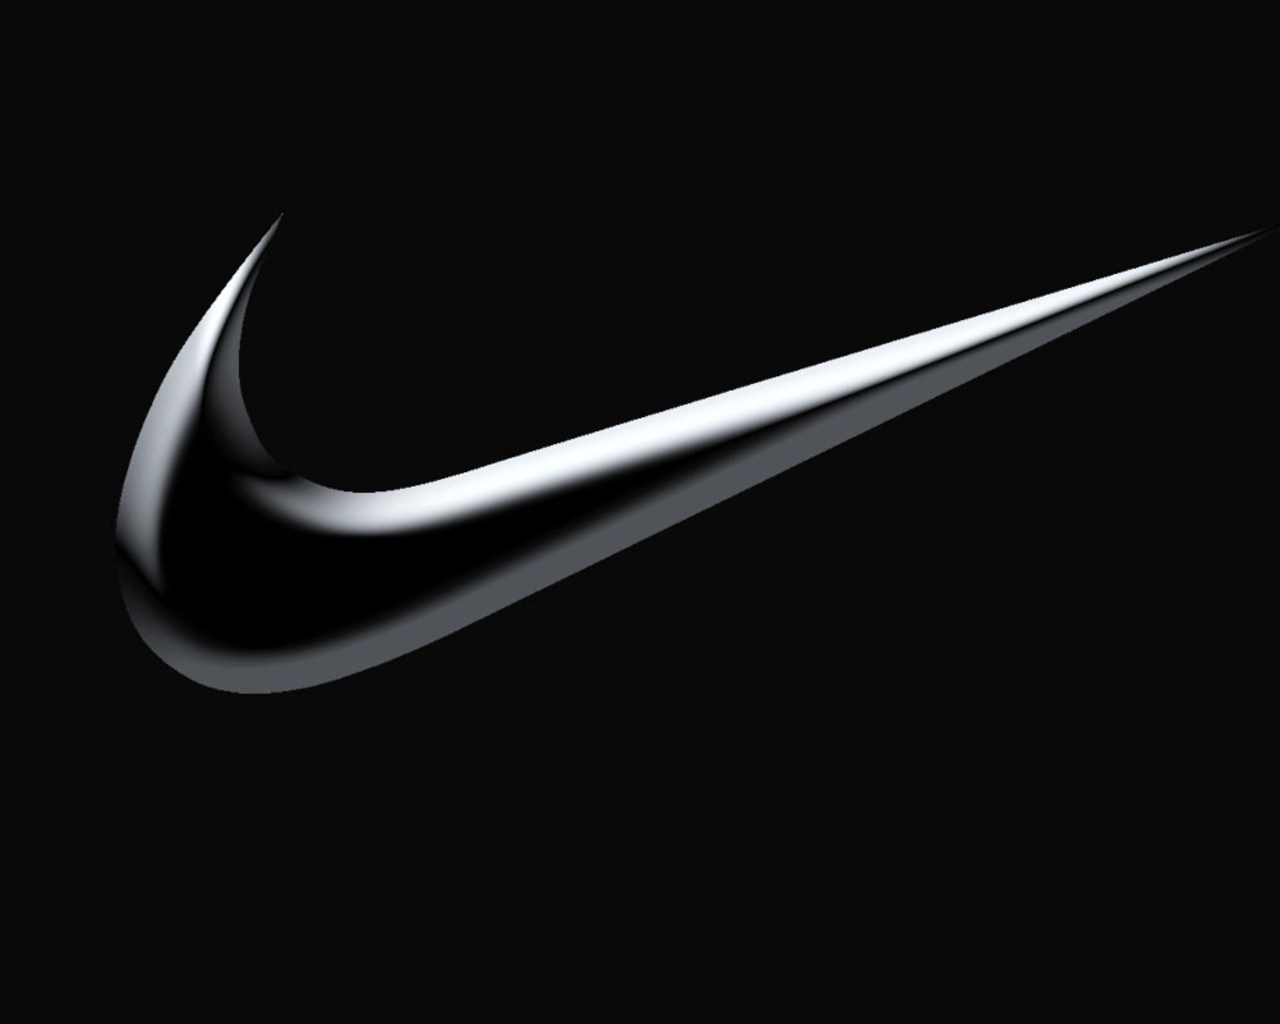 Nike Logo Wallpaper 5175 Hd Wallpapers in Logos   Imagescicom 1280x1024